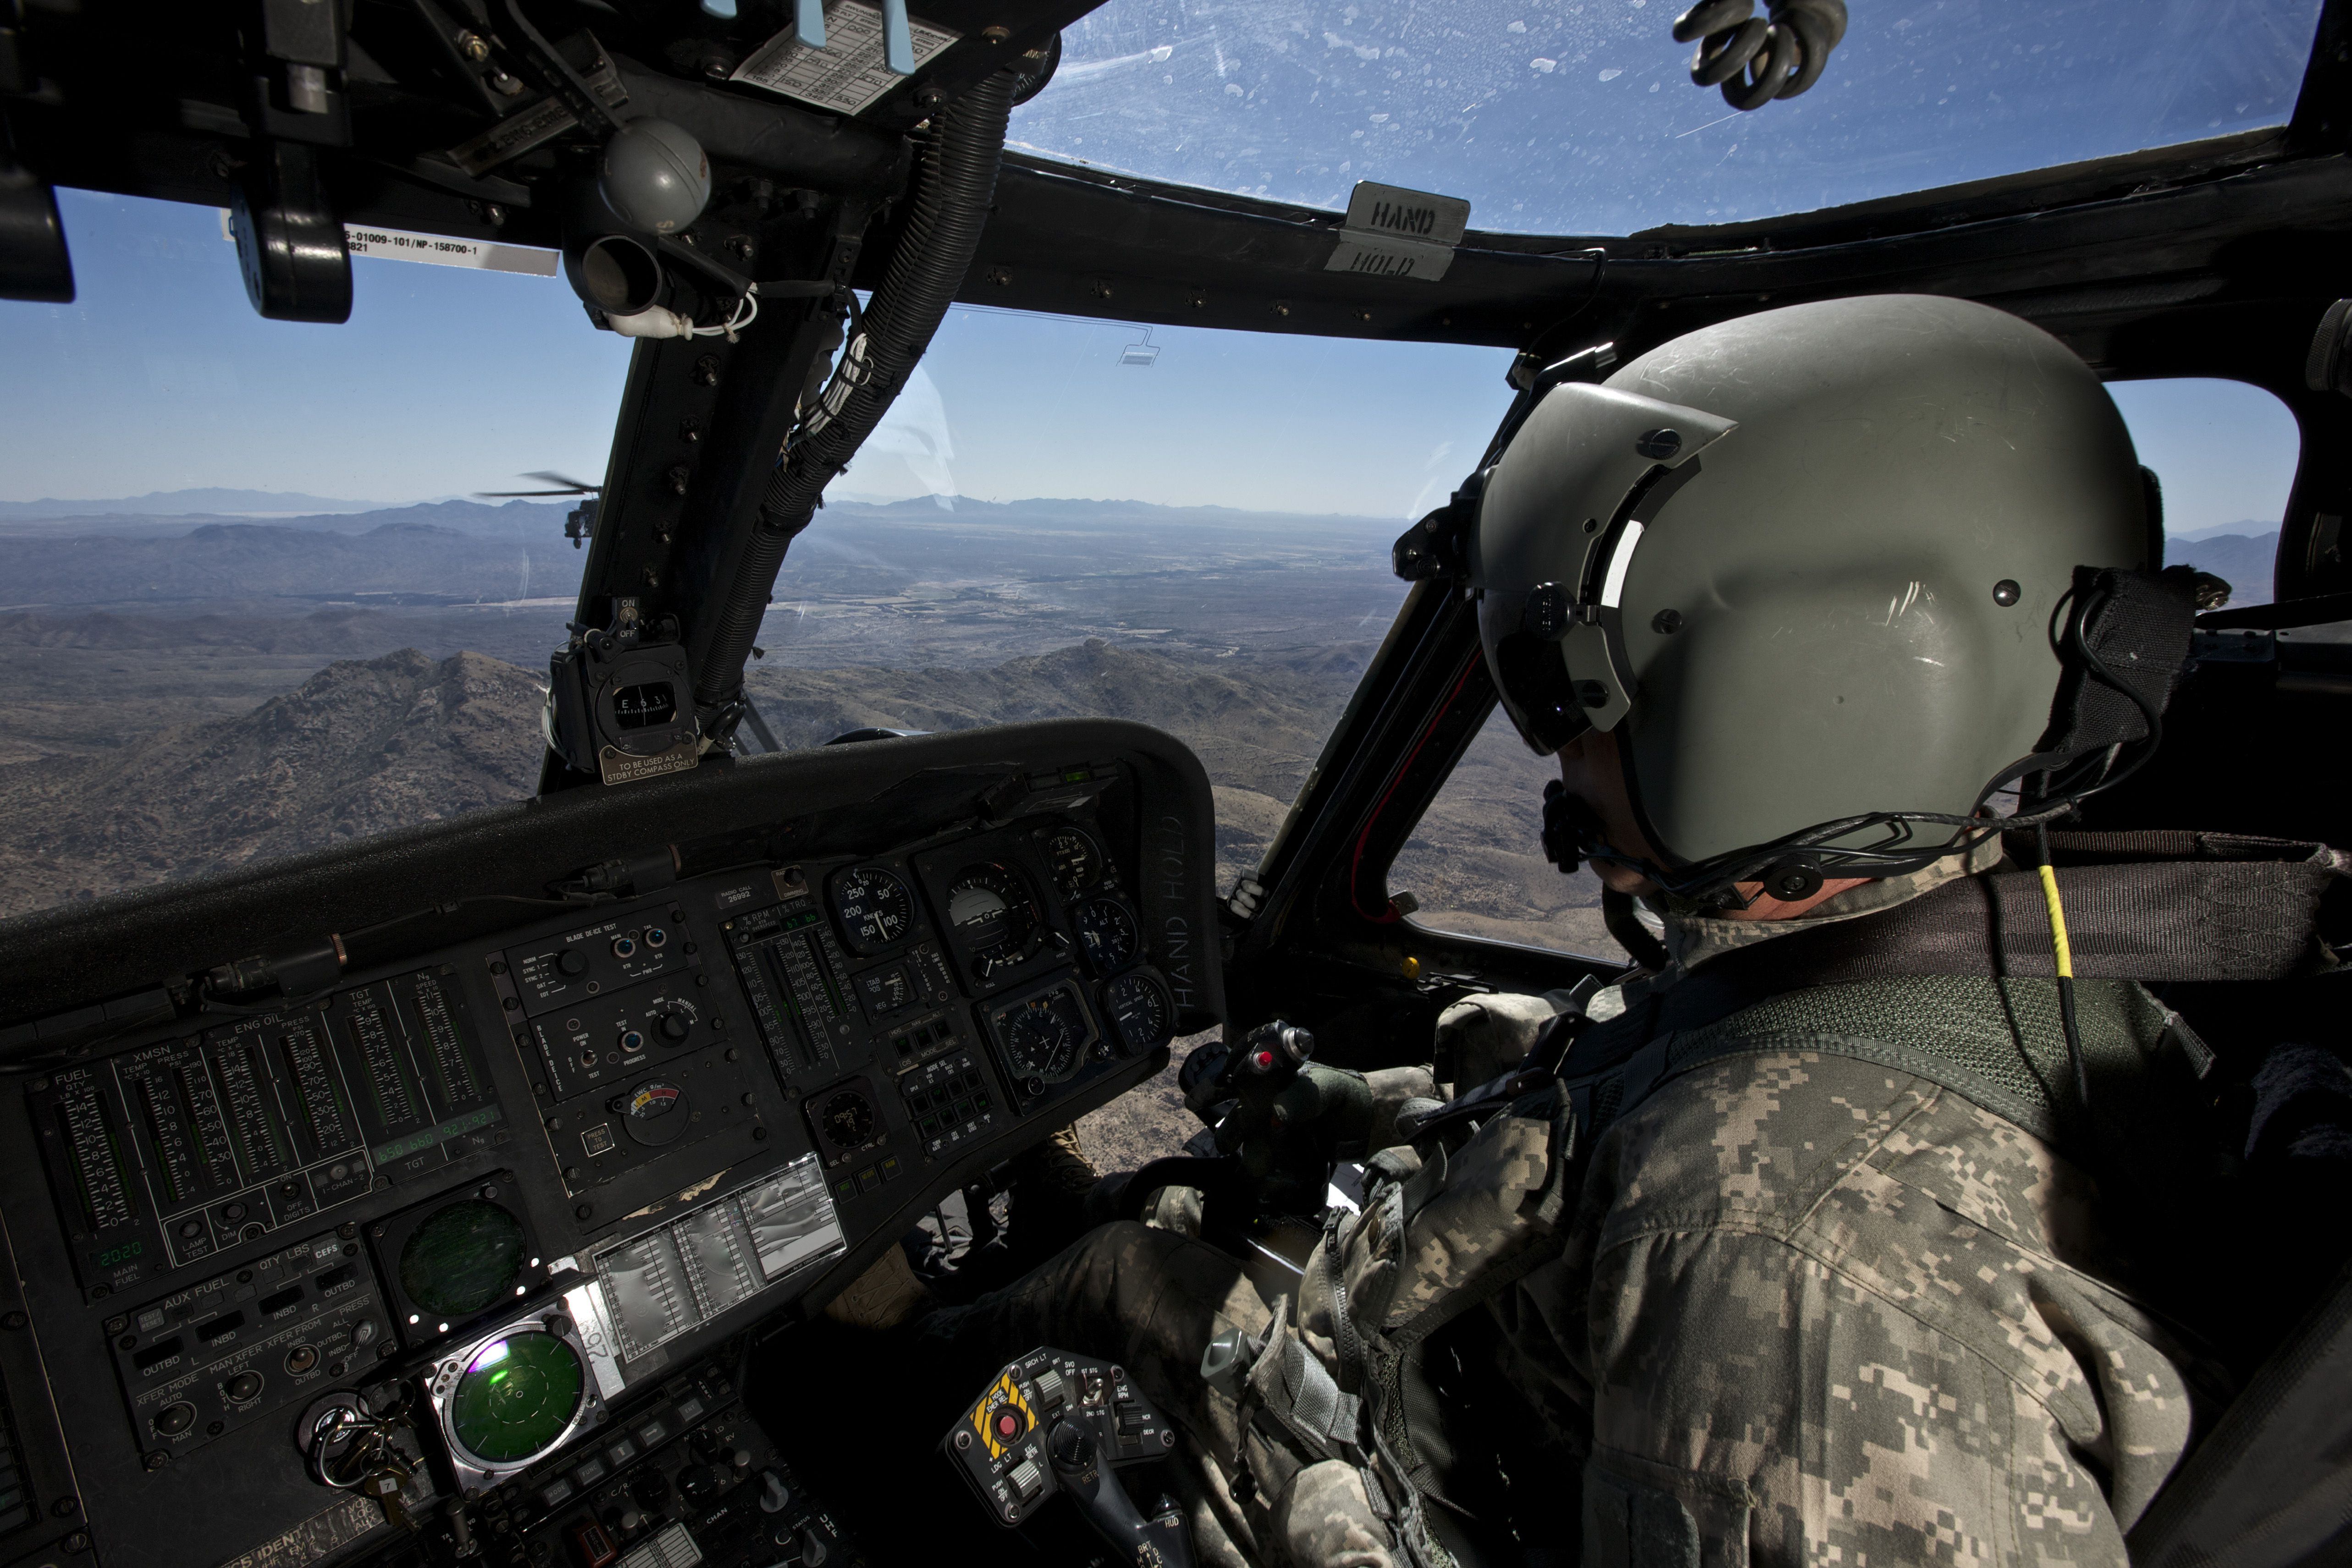 Us marine corps height and weight charts 2017 learn about army aviation medical standards and flight physicals nvjuhfo Choice Image